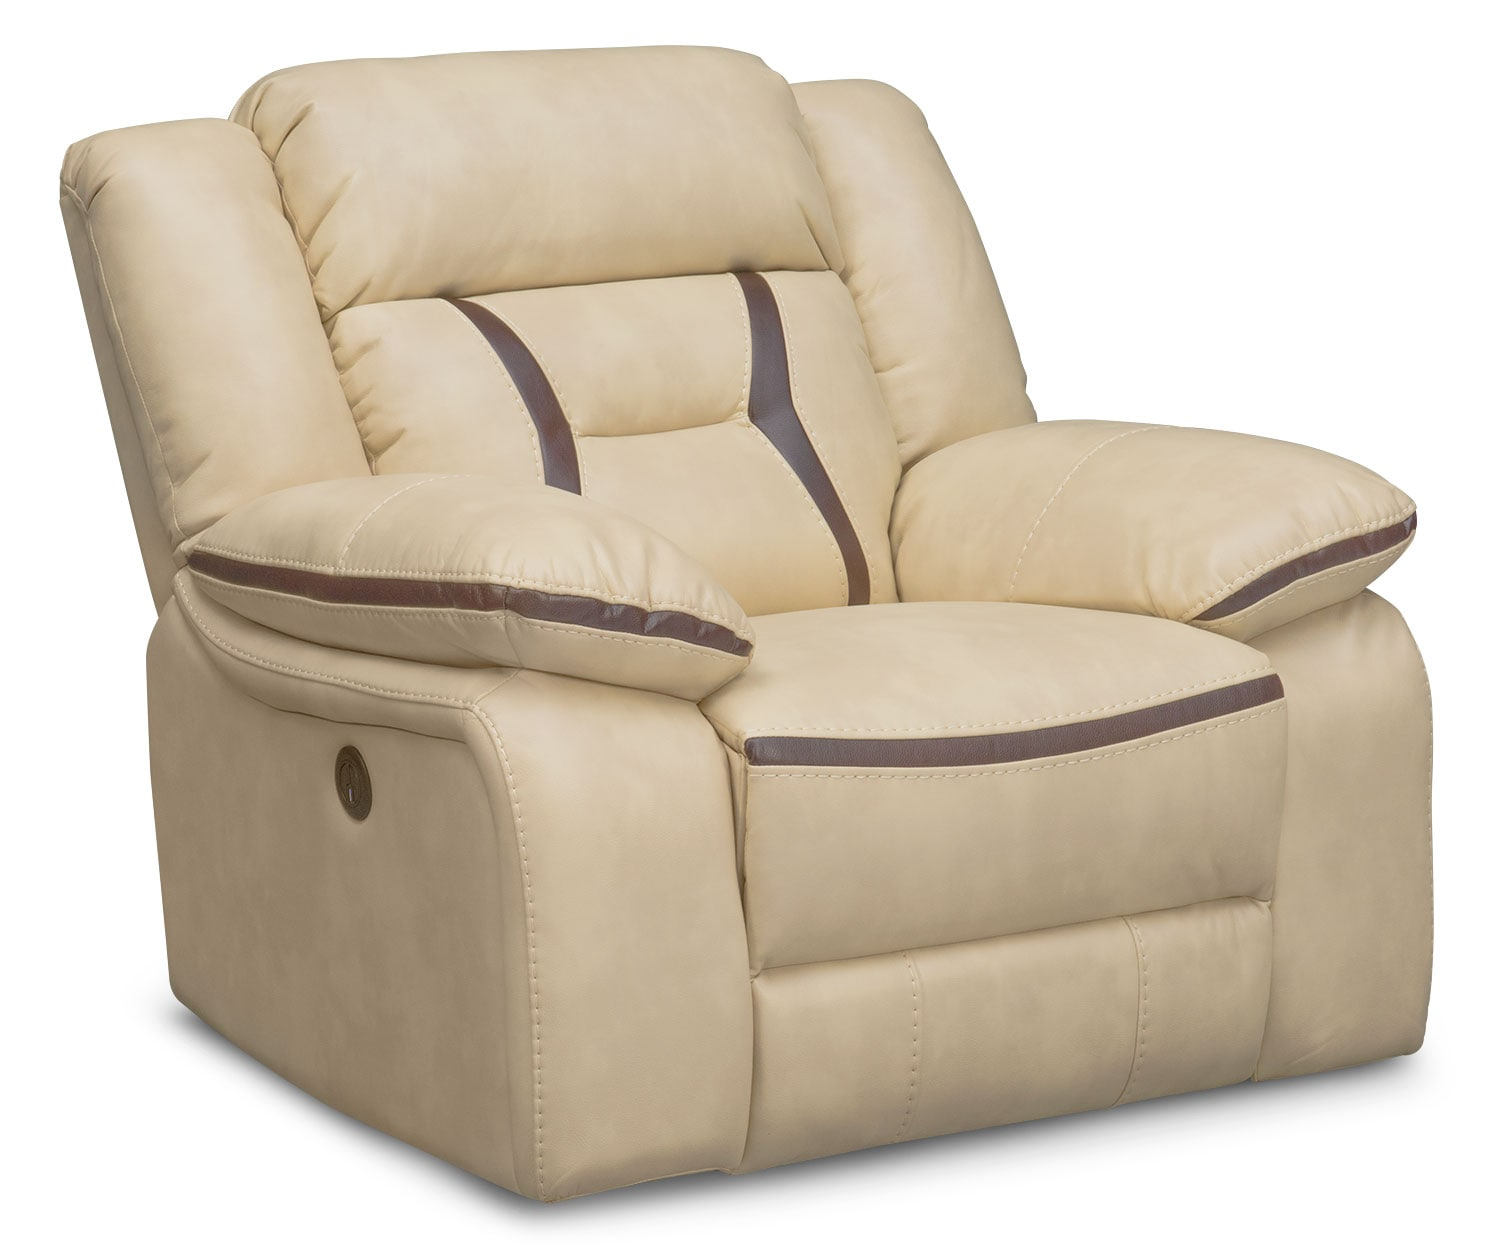 Value City Furniture Recliners